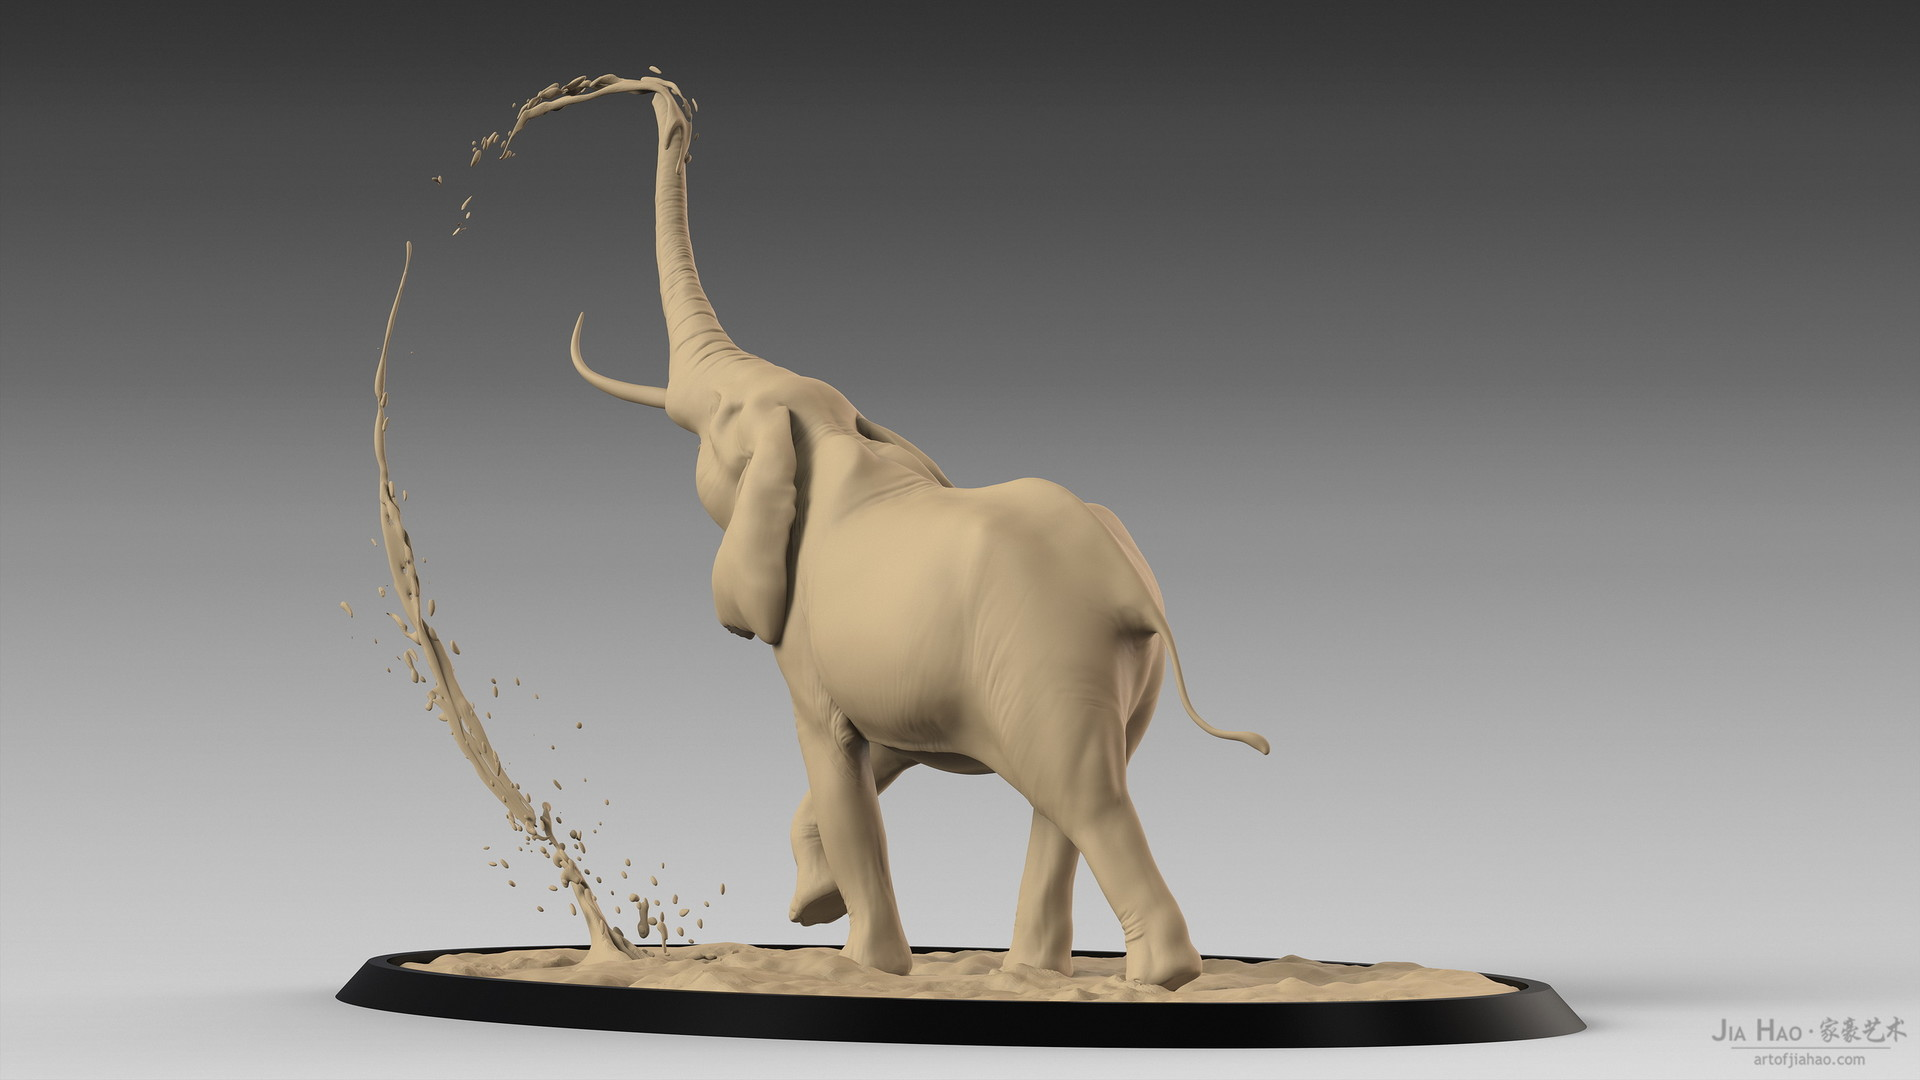 Jia hao africanelephant digitalsculpturea 05